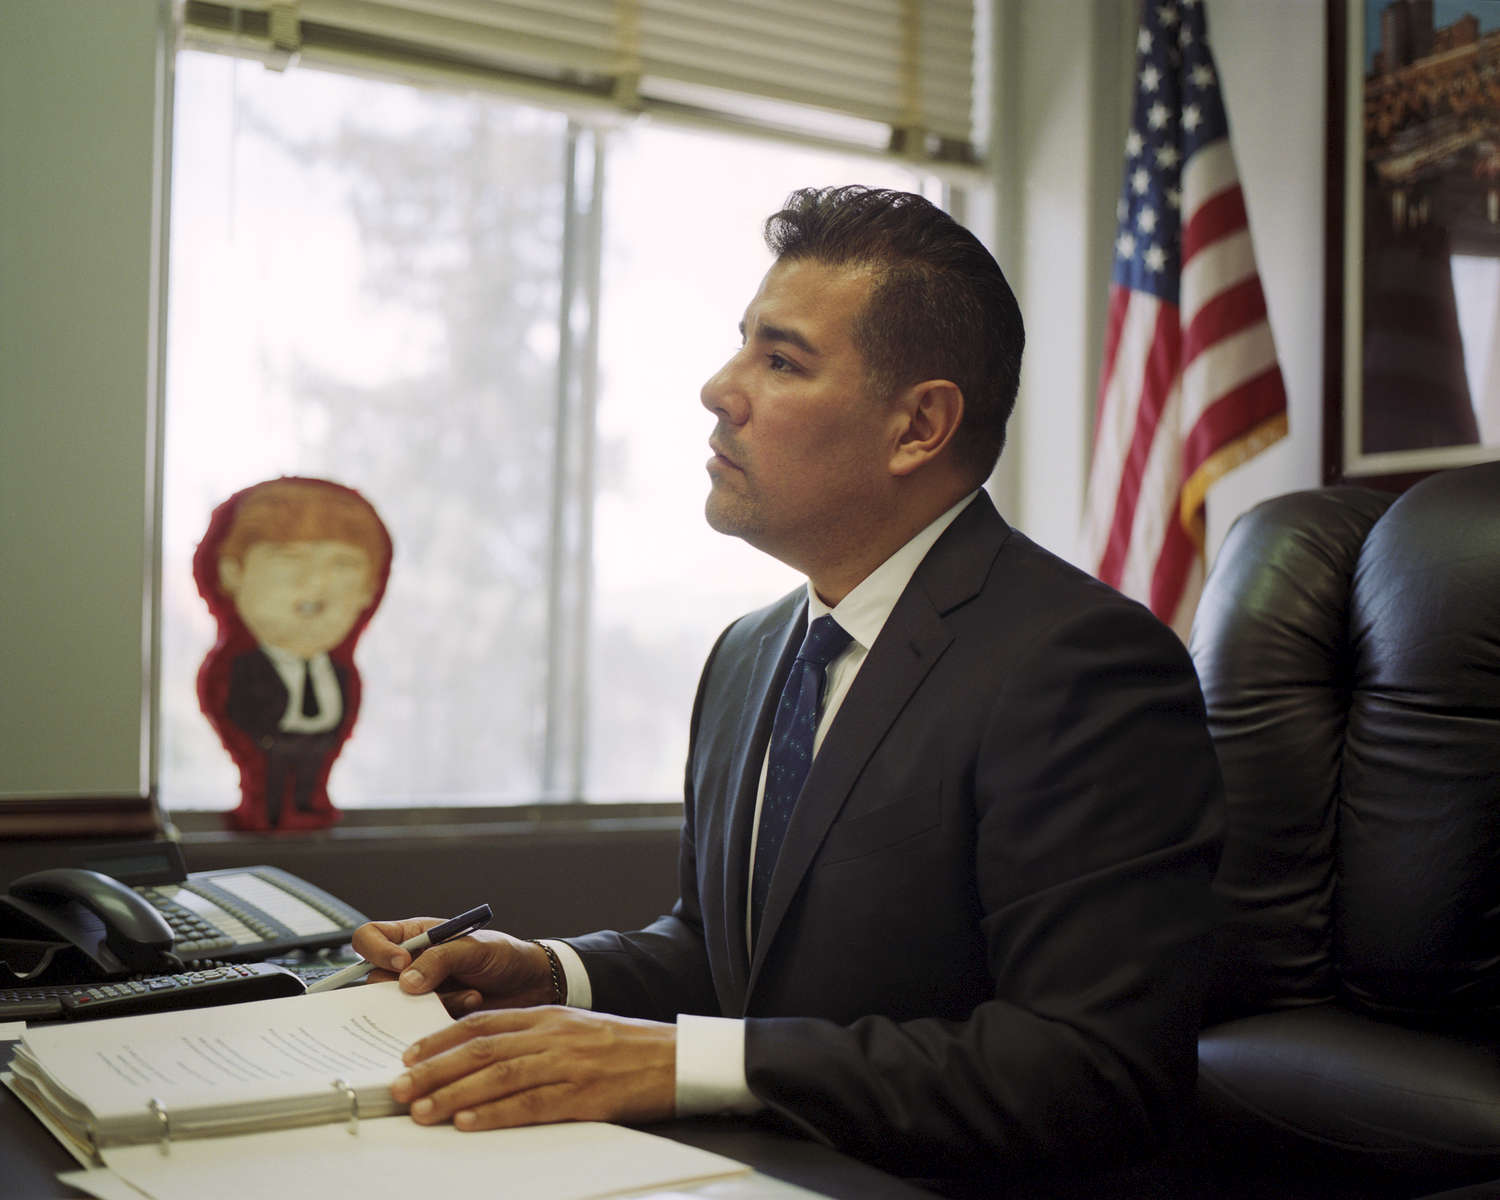 California state senator Ricardo Lara in his office at the Capitol building in Sacramento, CA. Lara wants to do what no one has before him: insure every Californian, even the undocumented. Behind him, on a windowsill, is a Trump piñata from a friend. At the end of the year, he plans to smash it open.